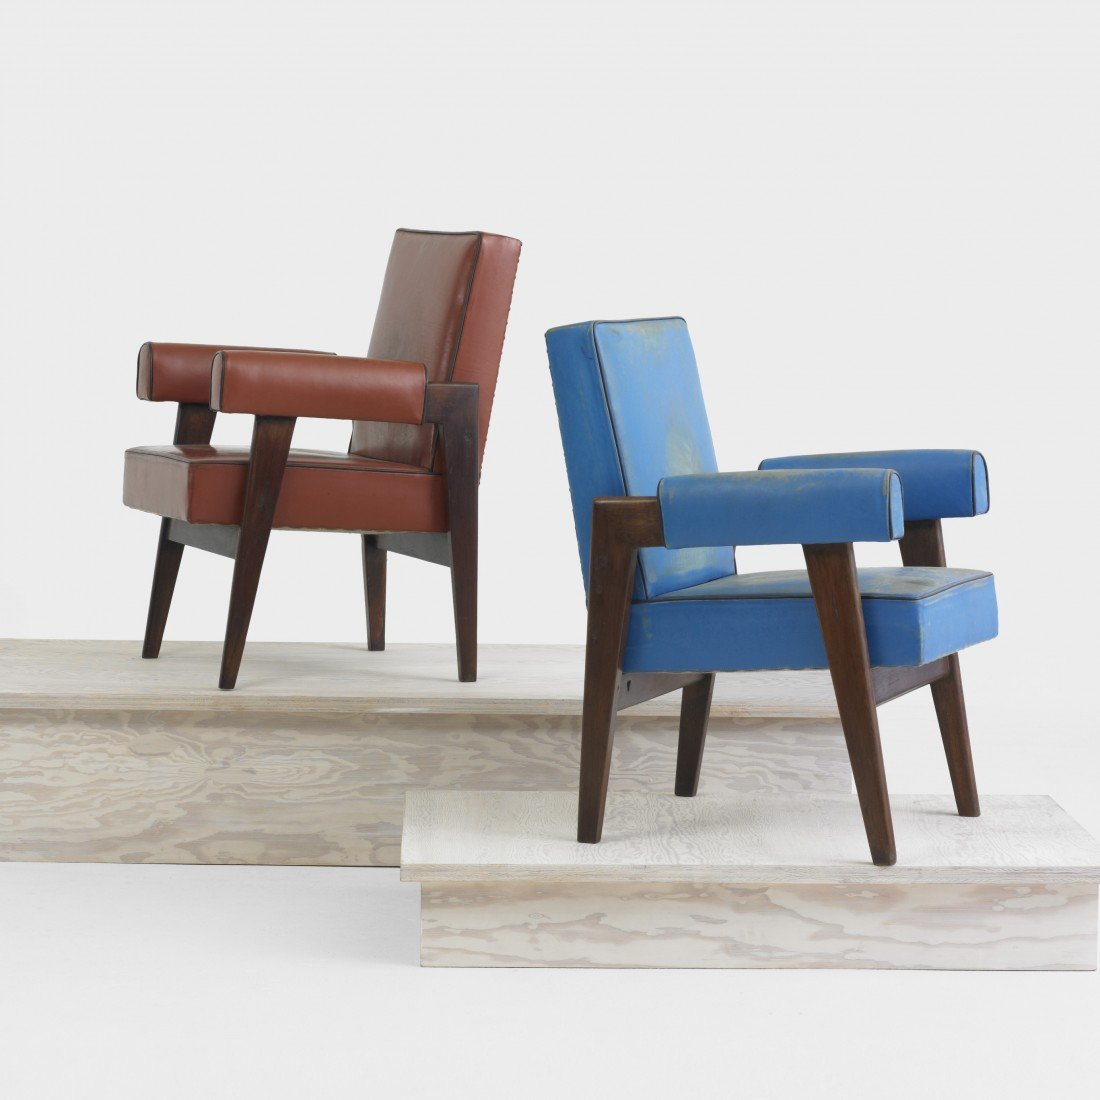 161: Le Corbusier and Jeanneret pair of armchairs